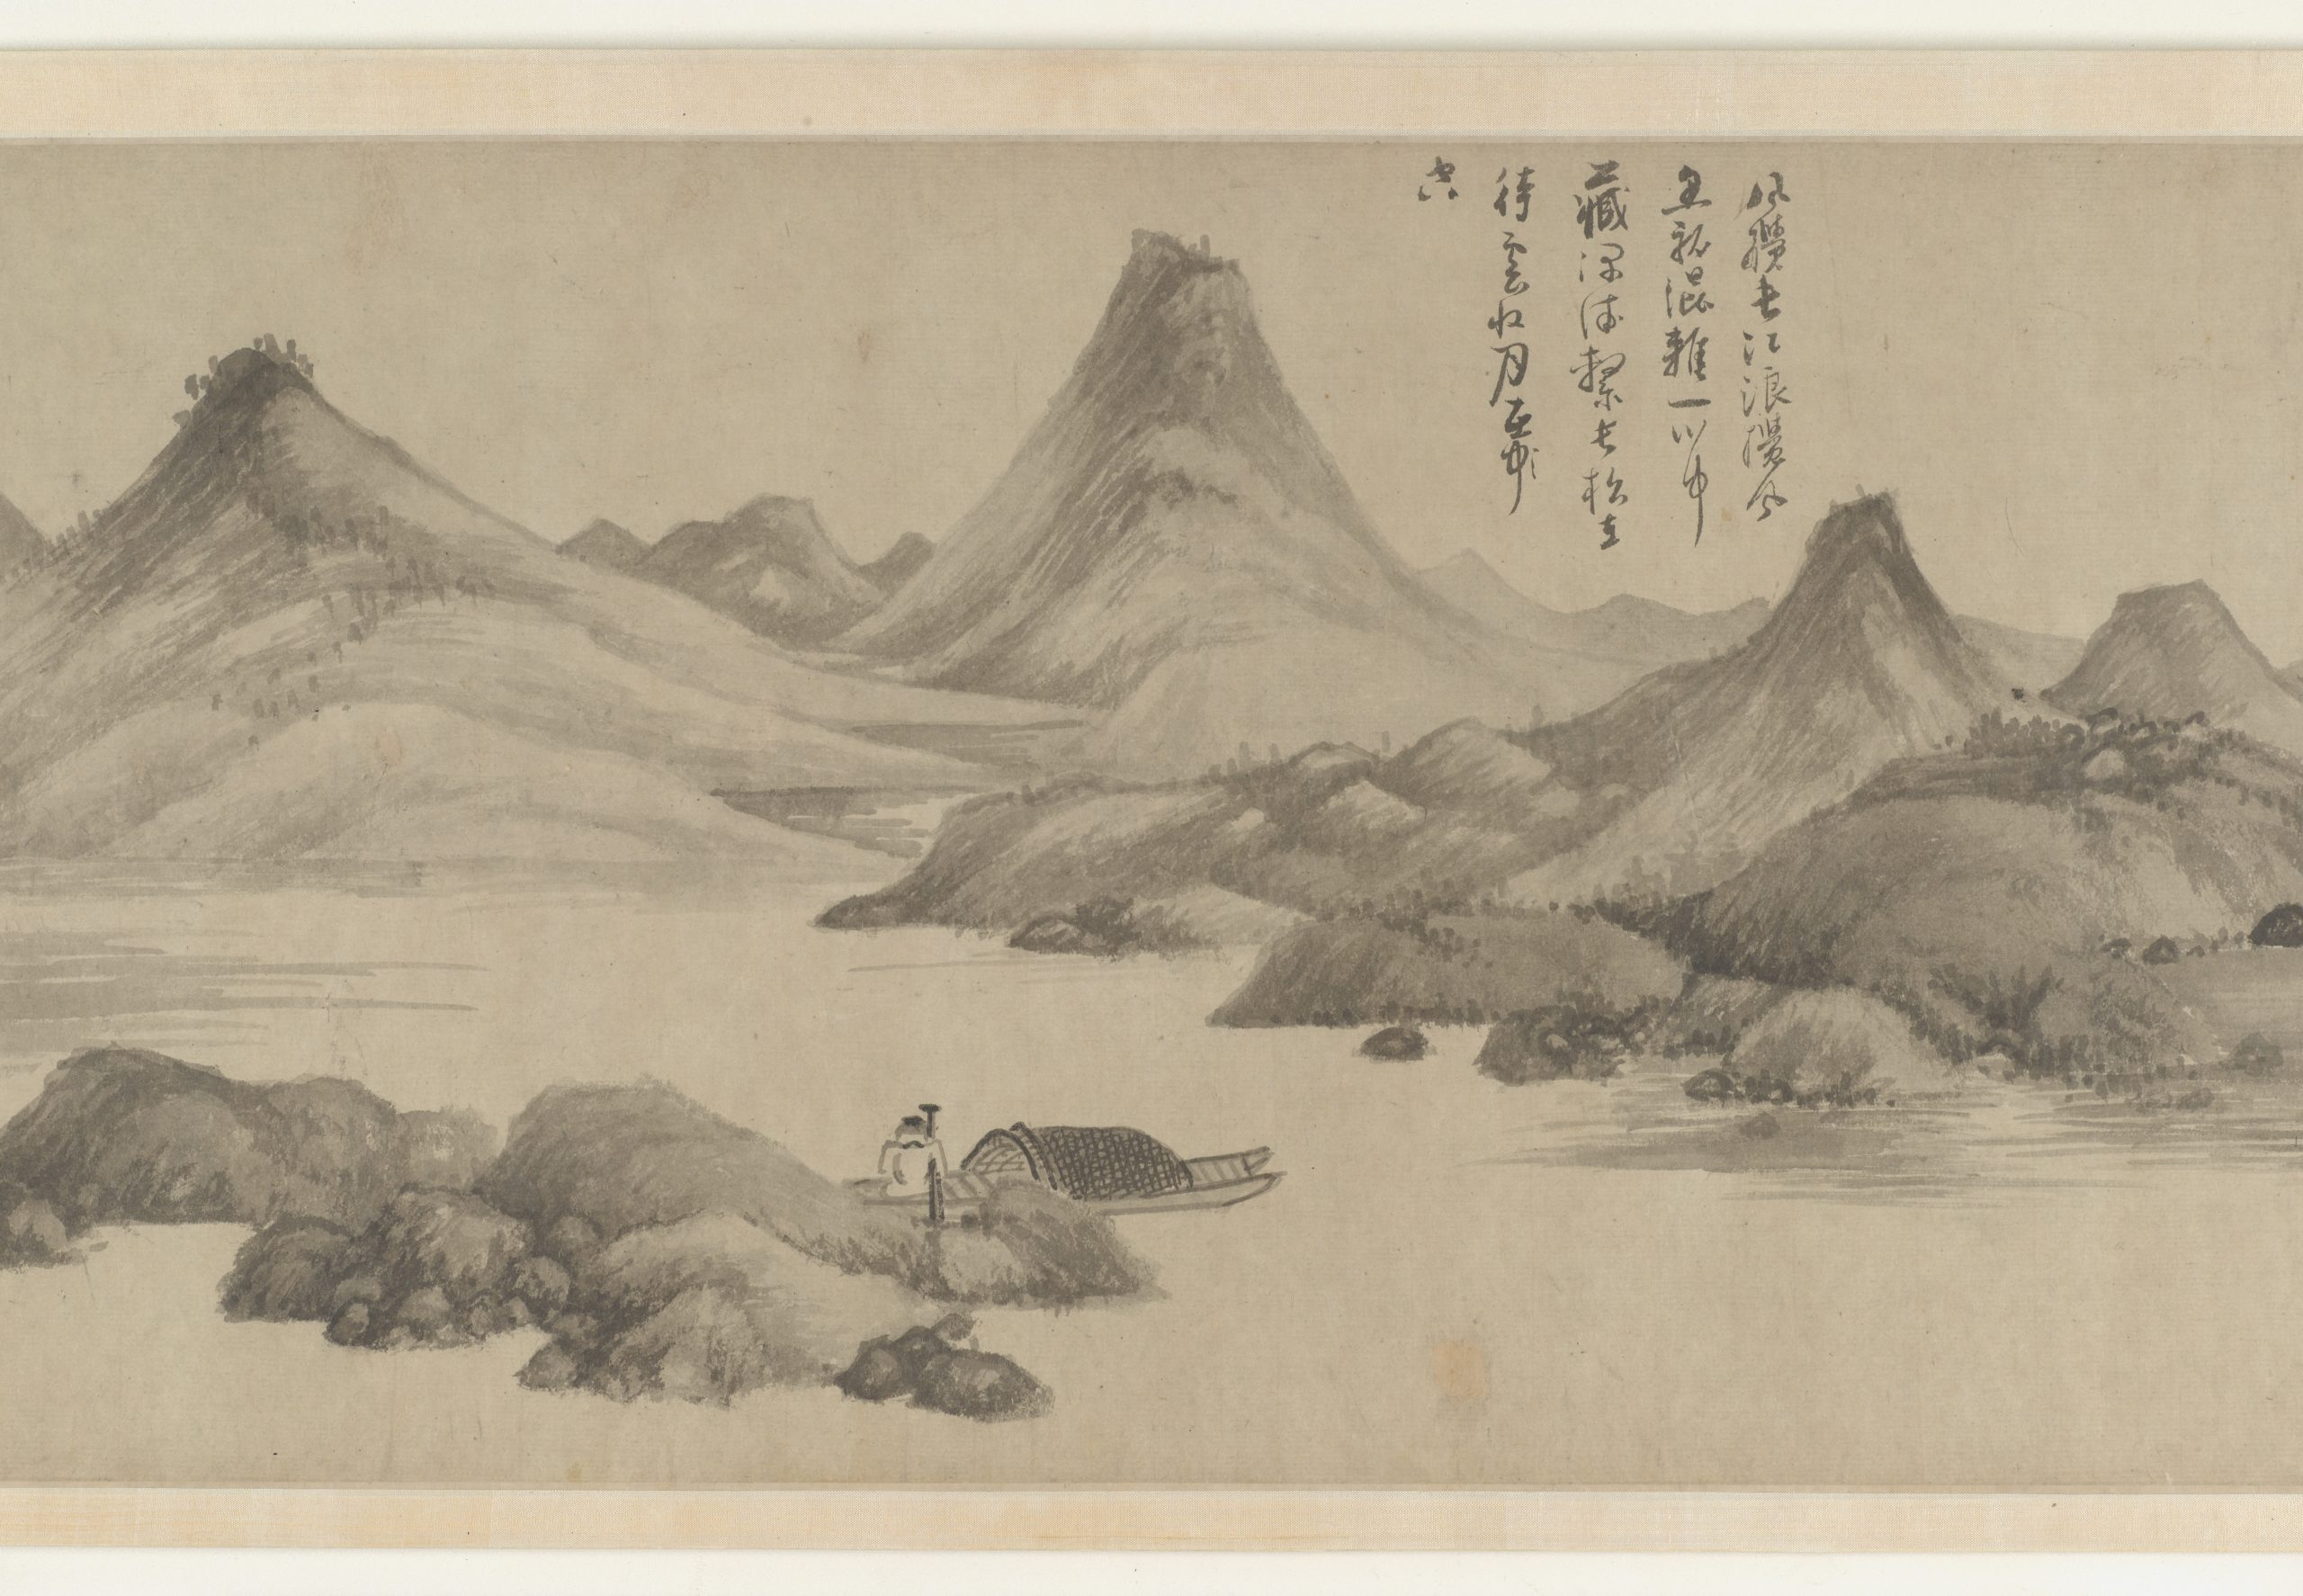 illustration of a man fishing on a lake surrounded by moutains